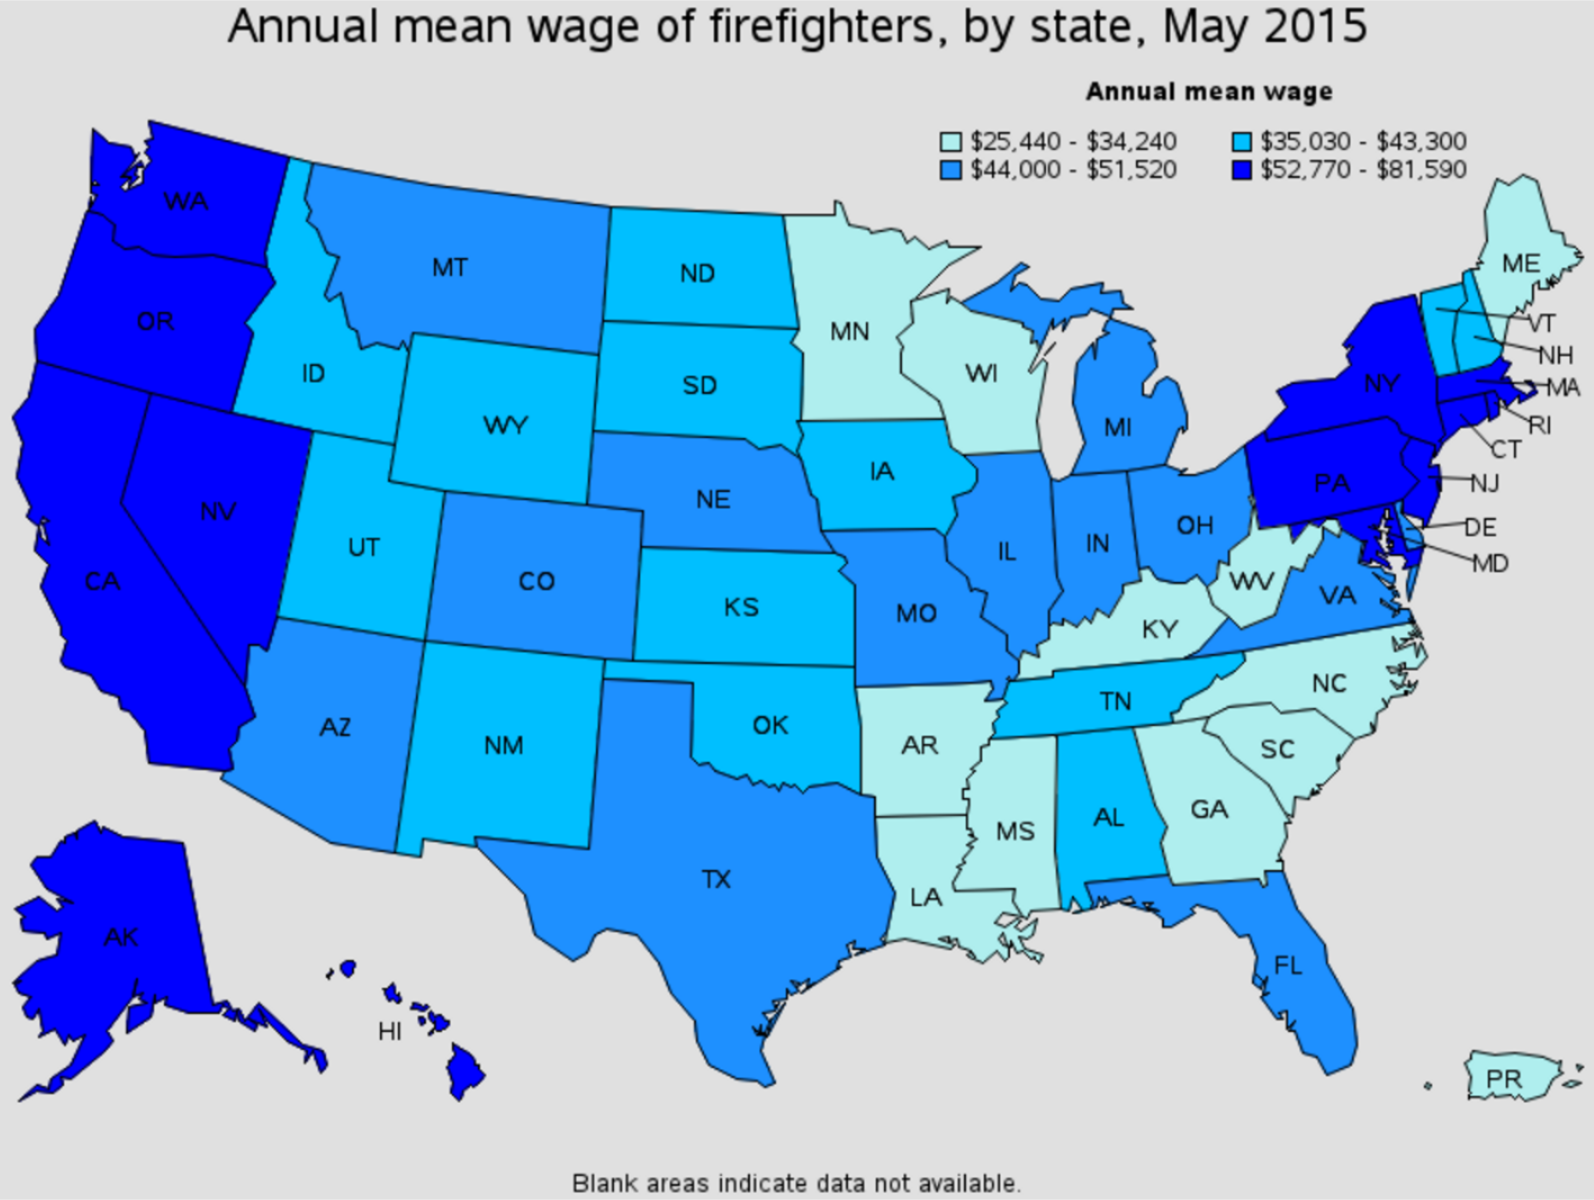 firefighter average salary by state Zapata Texas